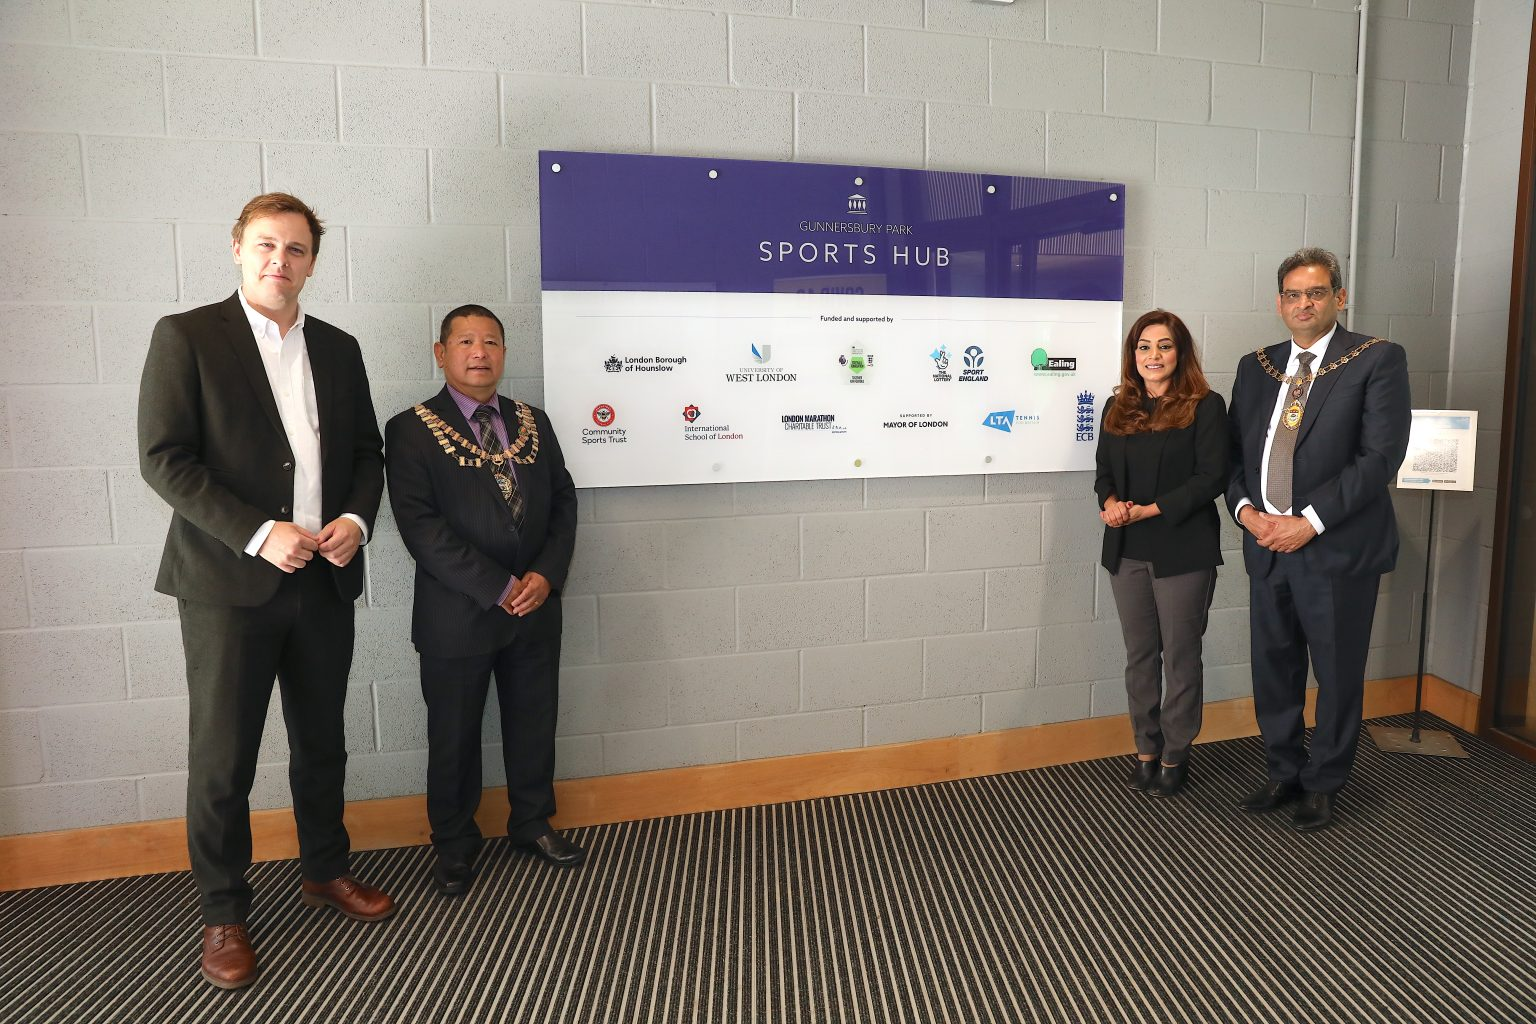 Councillors from Ealing and Hounslow at the Gunnersbury Park Sports Hub launch